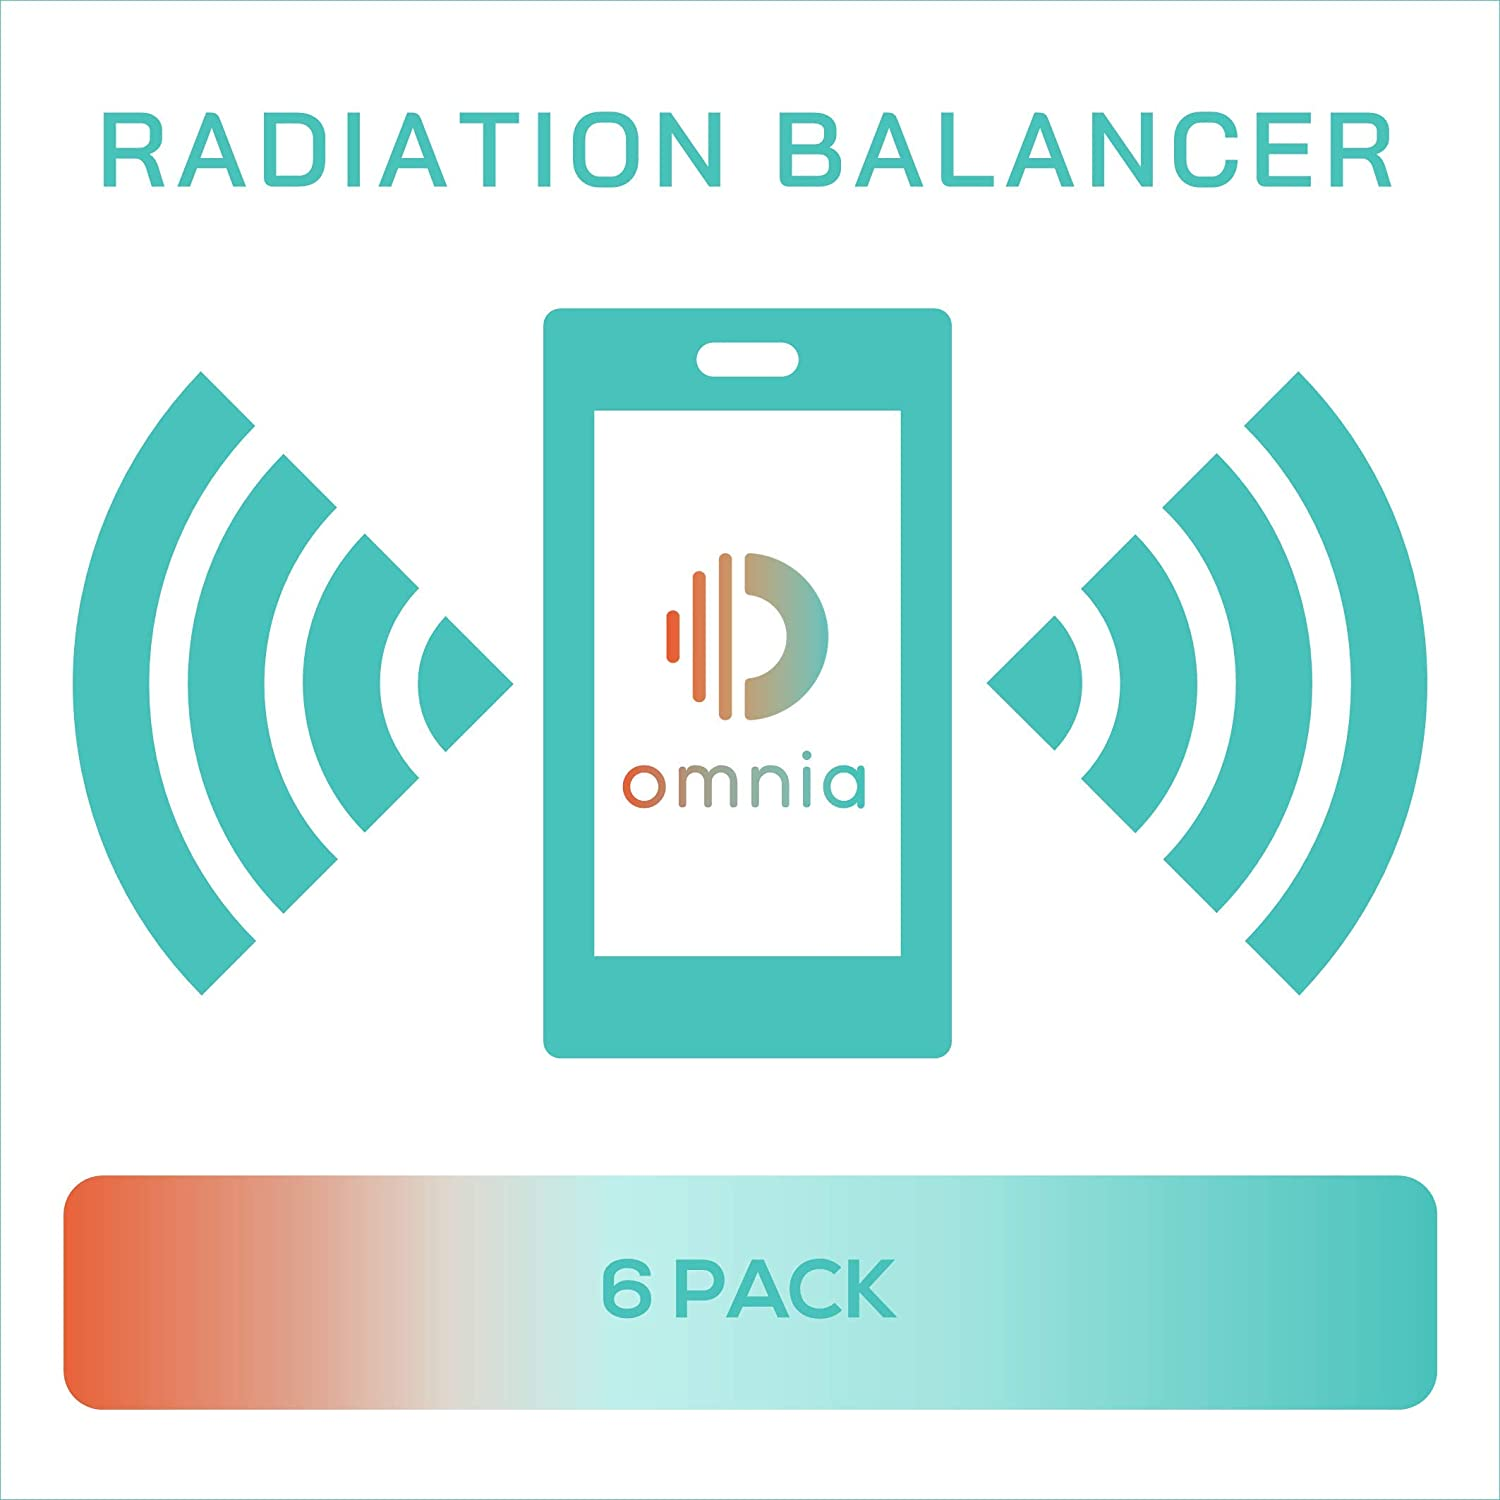 Mail order 6X Omnia Radiation Balancer ORB i EMF Don't miss the campaign from Protects